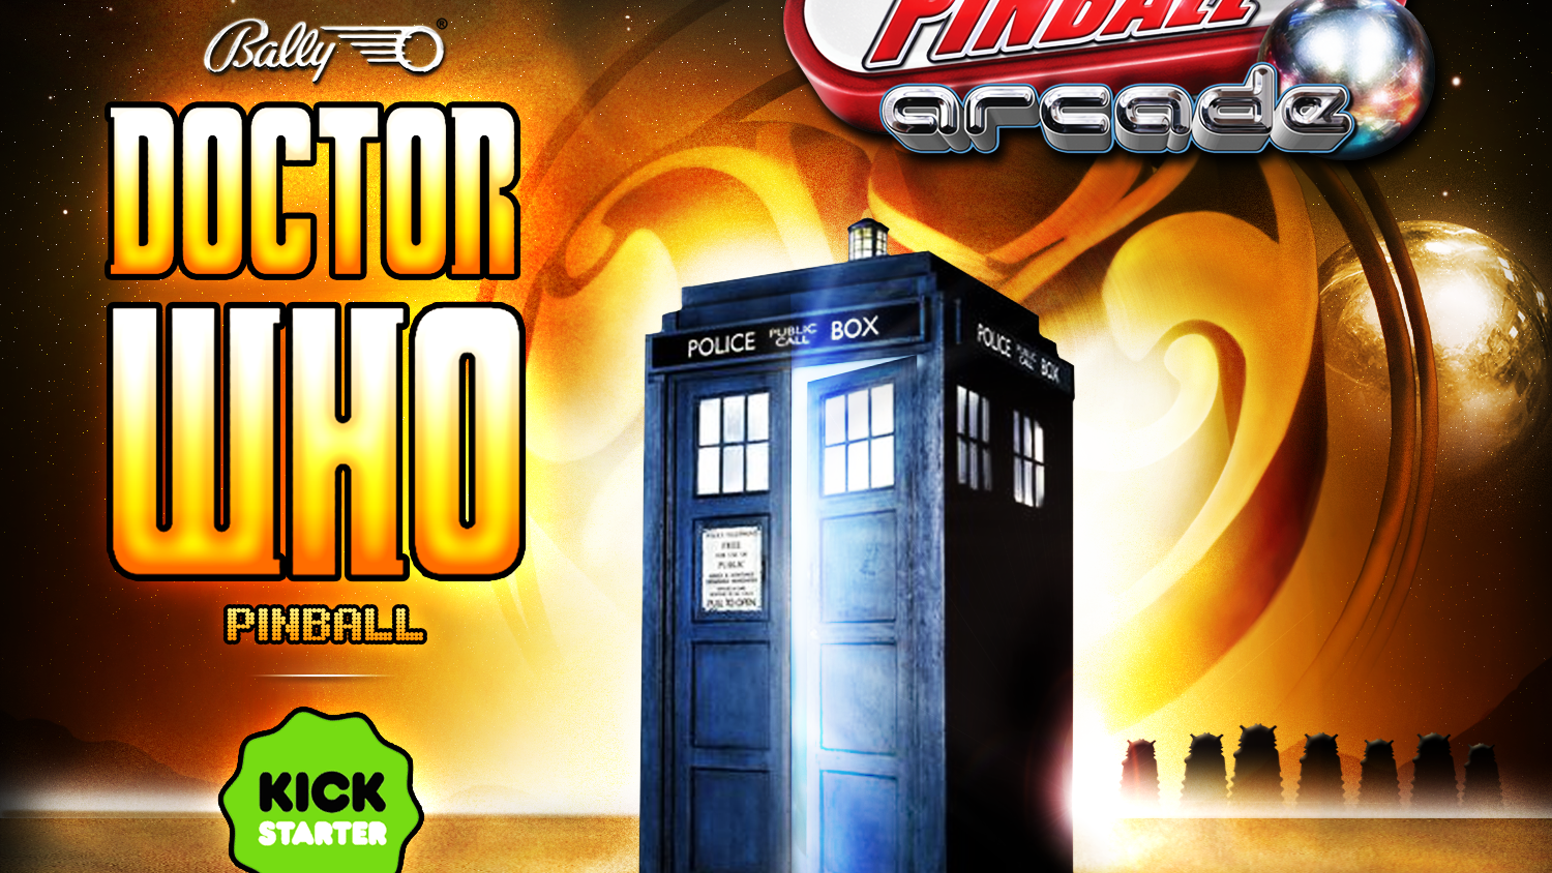 Help us bring the Doctor Who® pinball table to game consoles and mobile devices for a whole new generation to enjoy!